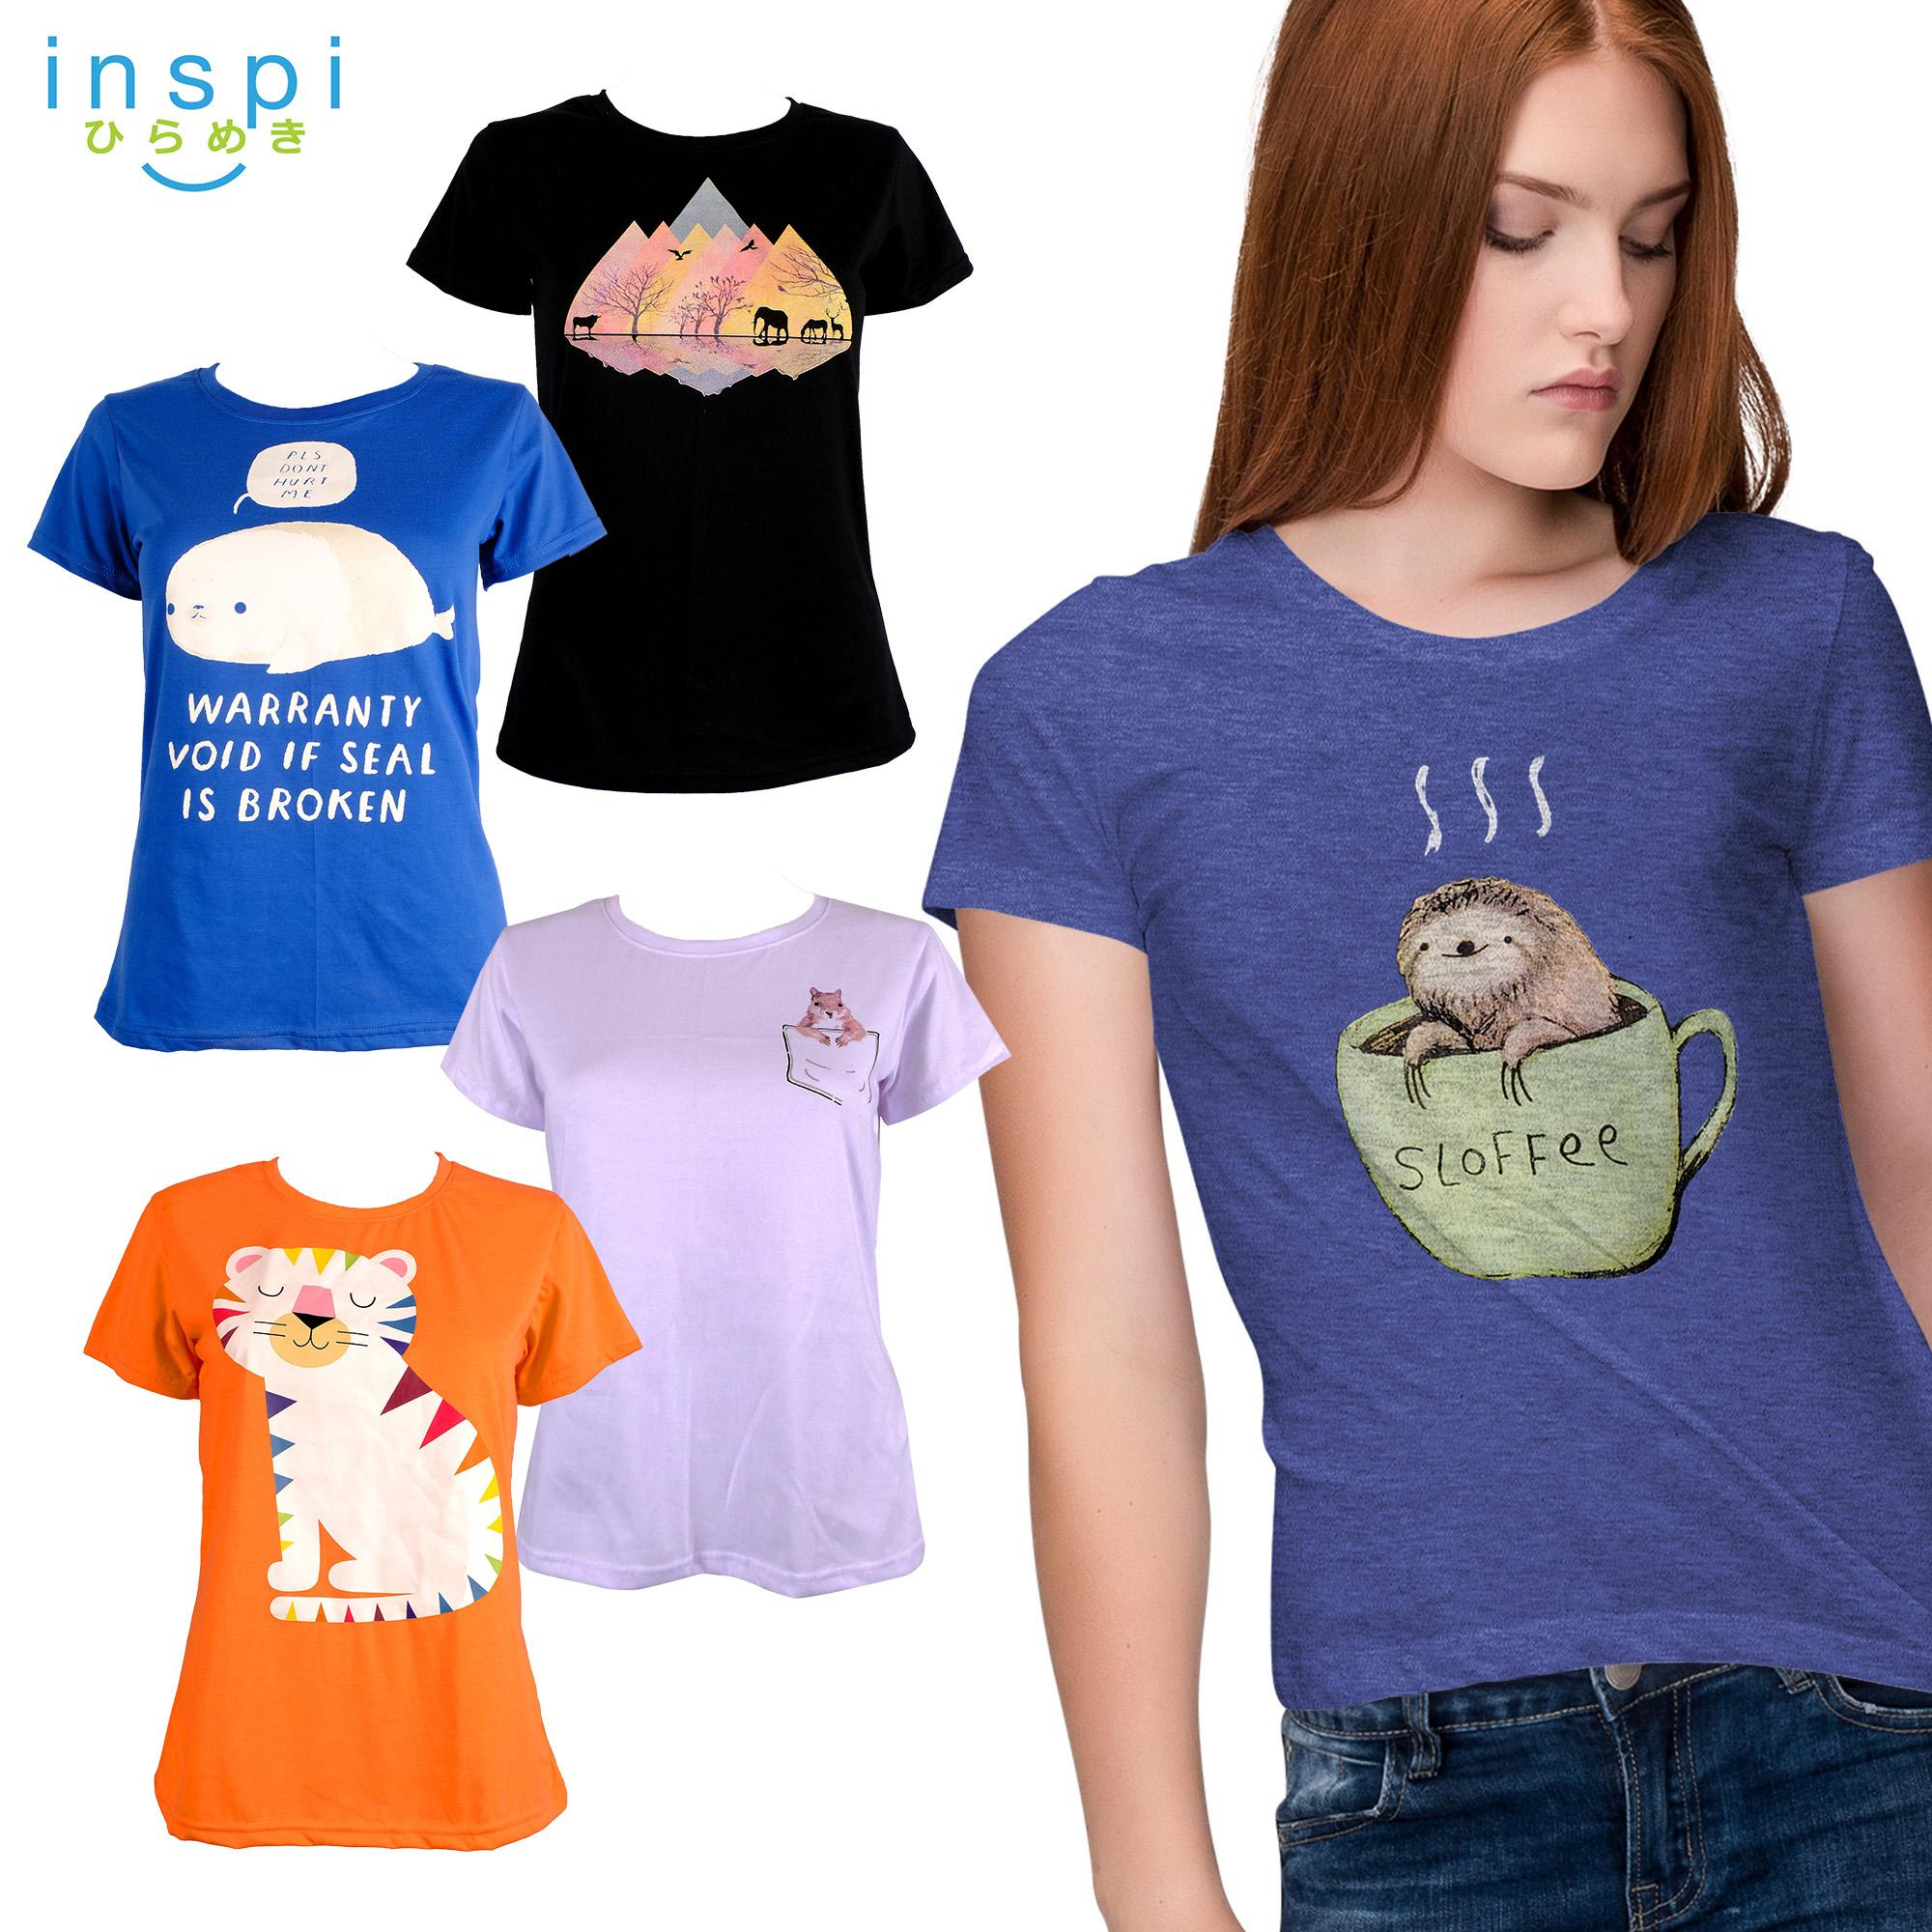 98b681f32 INSPI Tees Ladies Pet Collection tshirt printed graphic tee Ladies t shirt  shirts women tshirts for